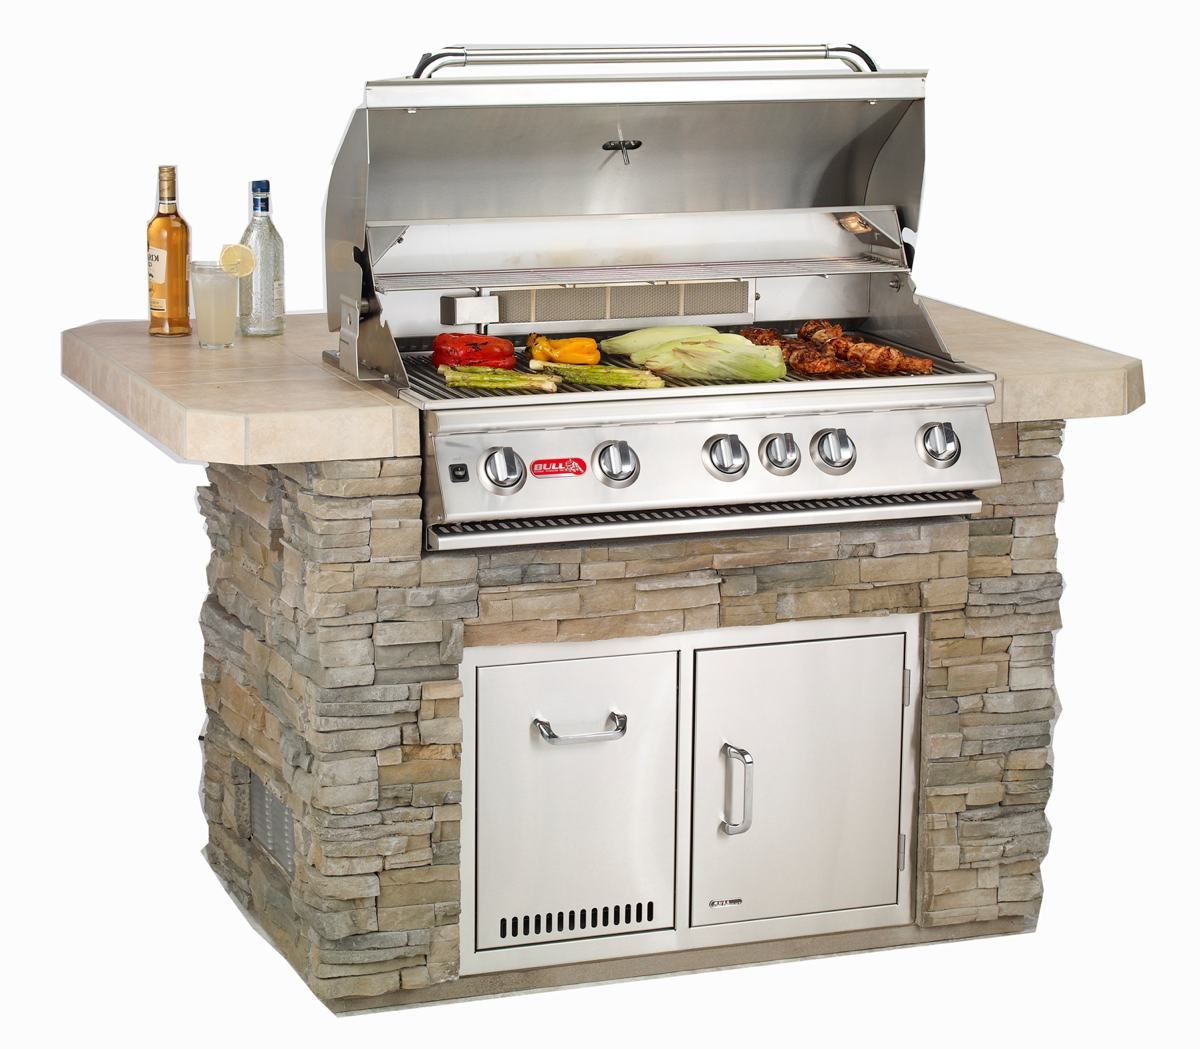 Diy Built In Grill Island Drop In Grill Package Only Includes Grill Island And Accessor Built In Grill Outdoor Kitchen Countertops Outdoor Kitchen Design